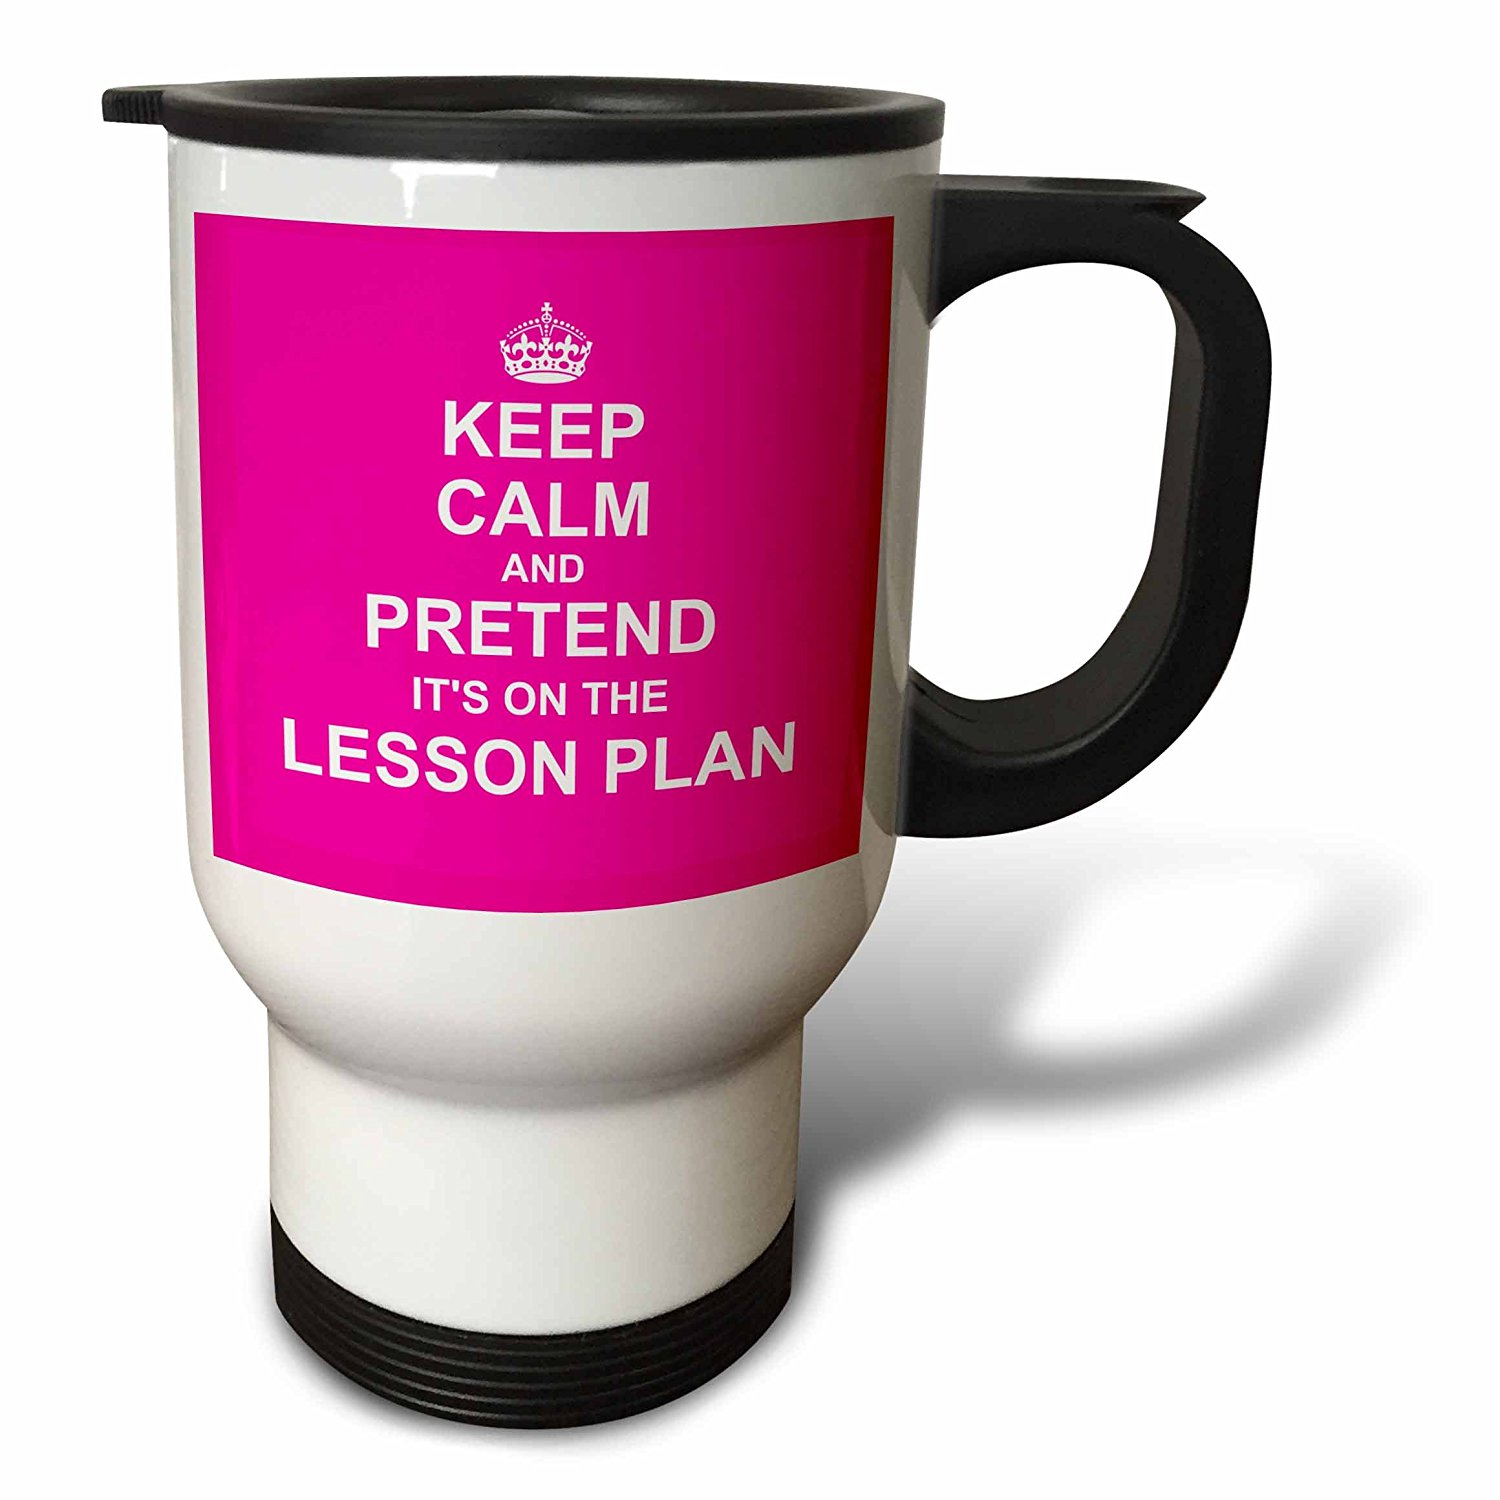 3dRose Hot Pink Keep Calm and Pretend its on the Lesson Plan fun teacher gift, Travel Mug, 14oz, Stainless Steel